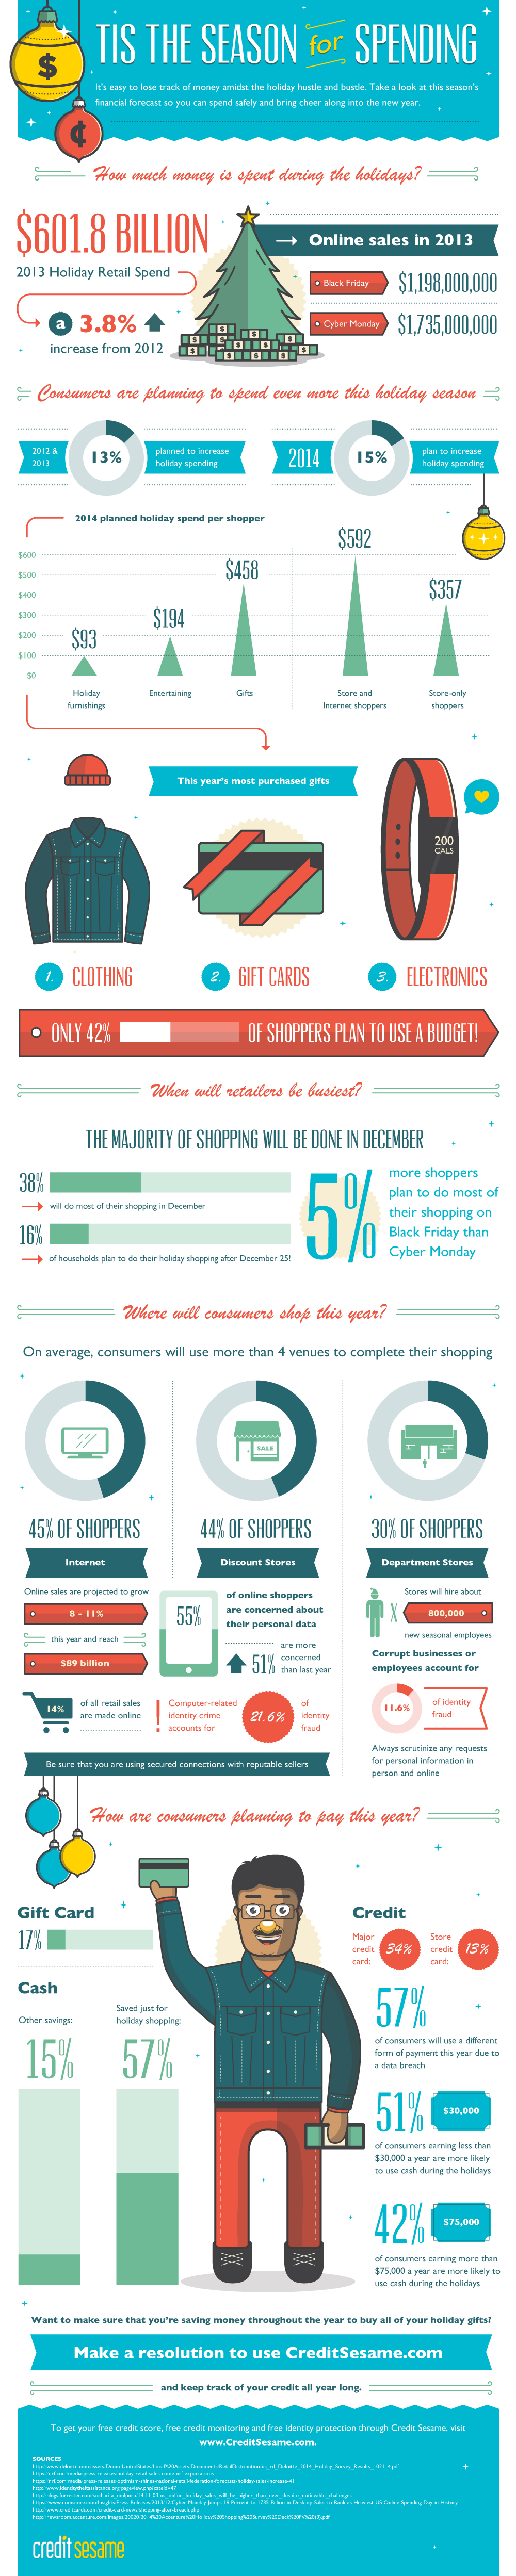 Holiday Spending Infographic Provided by CreditSesame.com